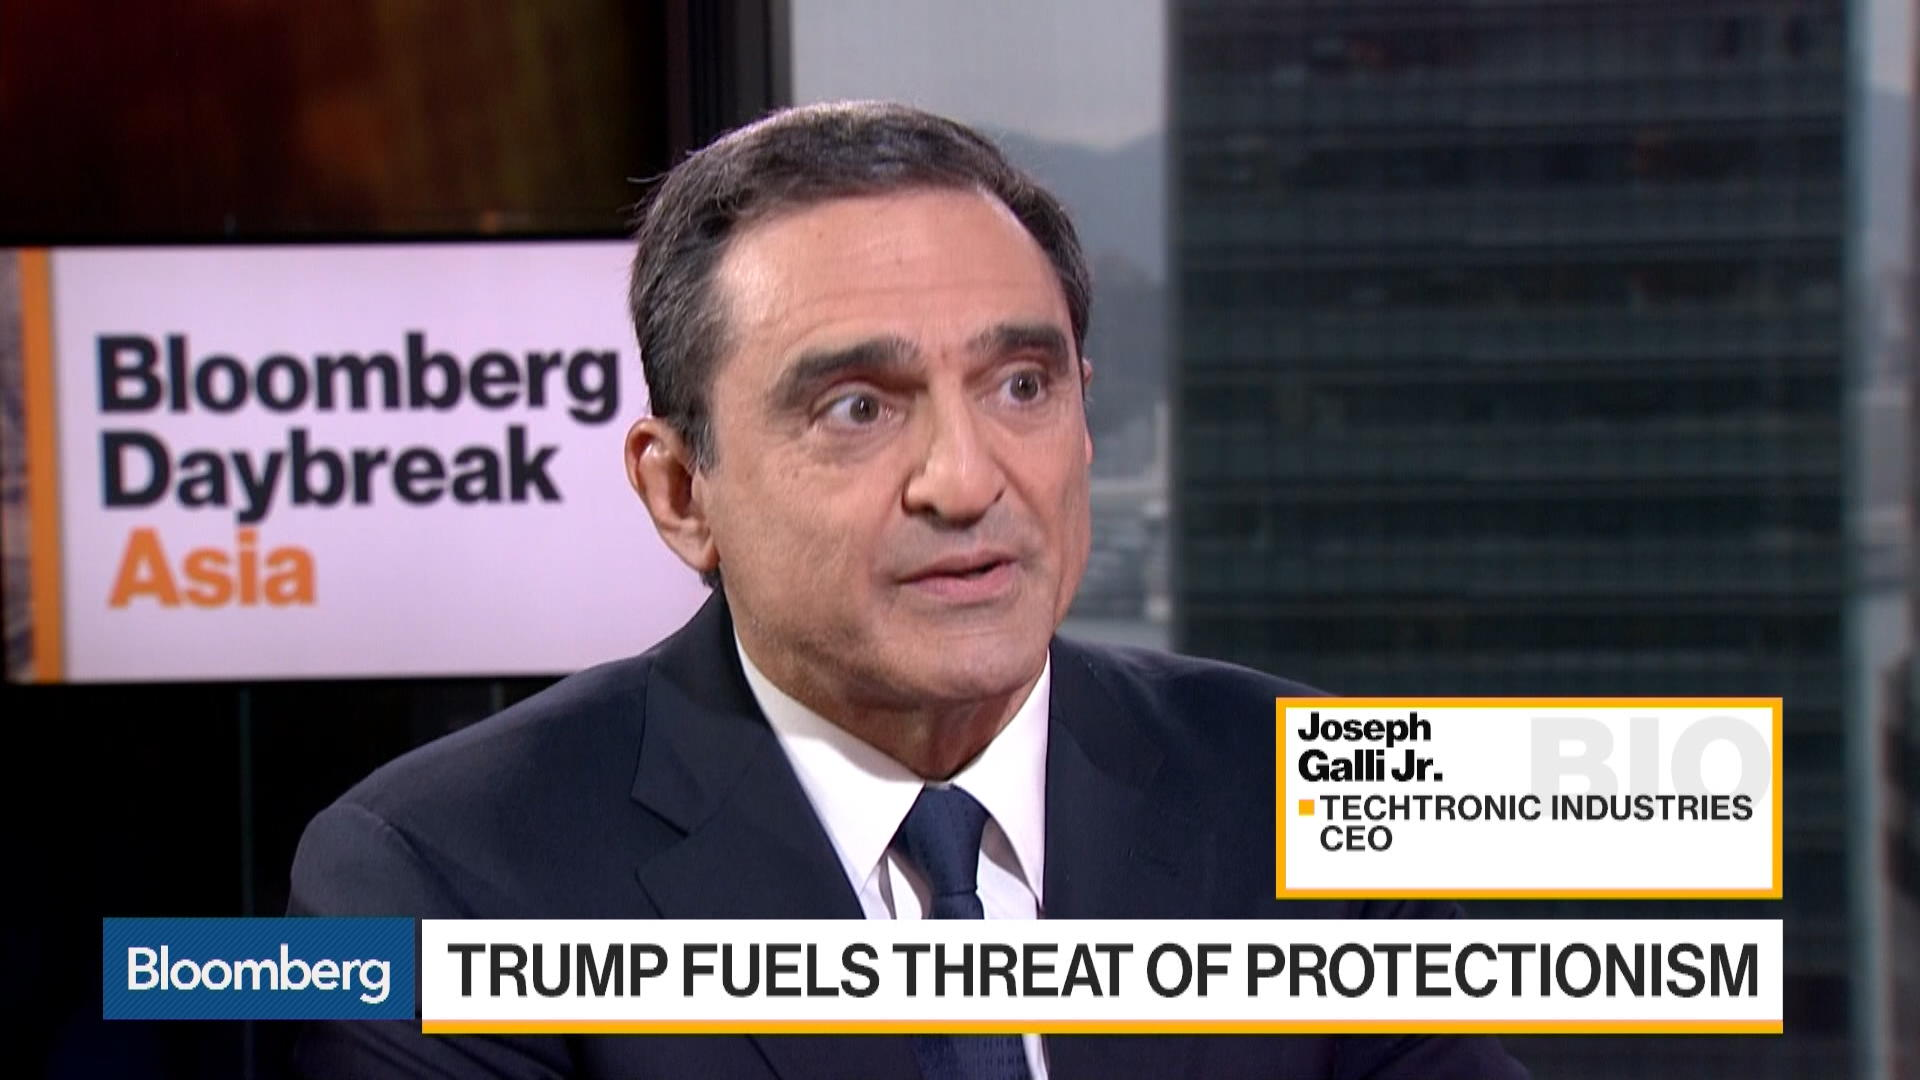 Techtronic Industries CEO Says Very Confident About 2017 Bloomberg